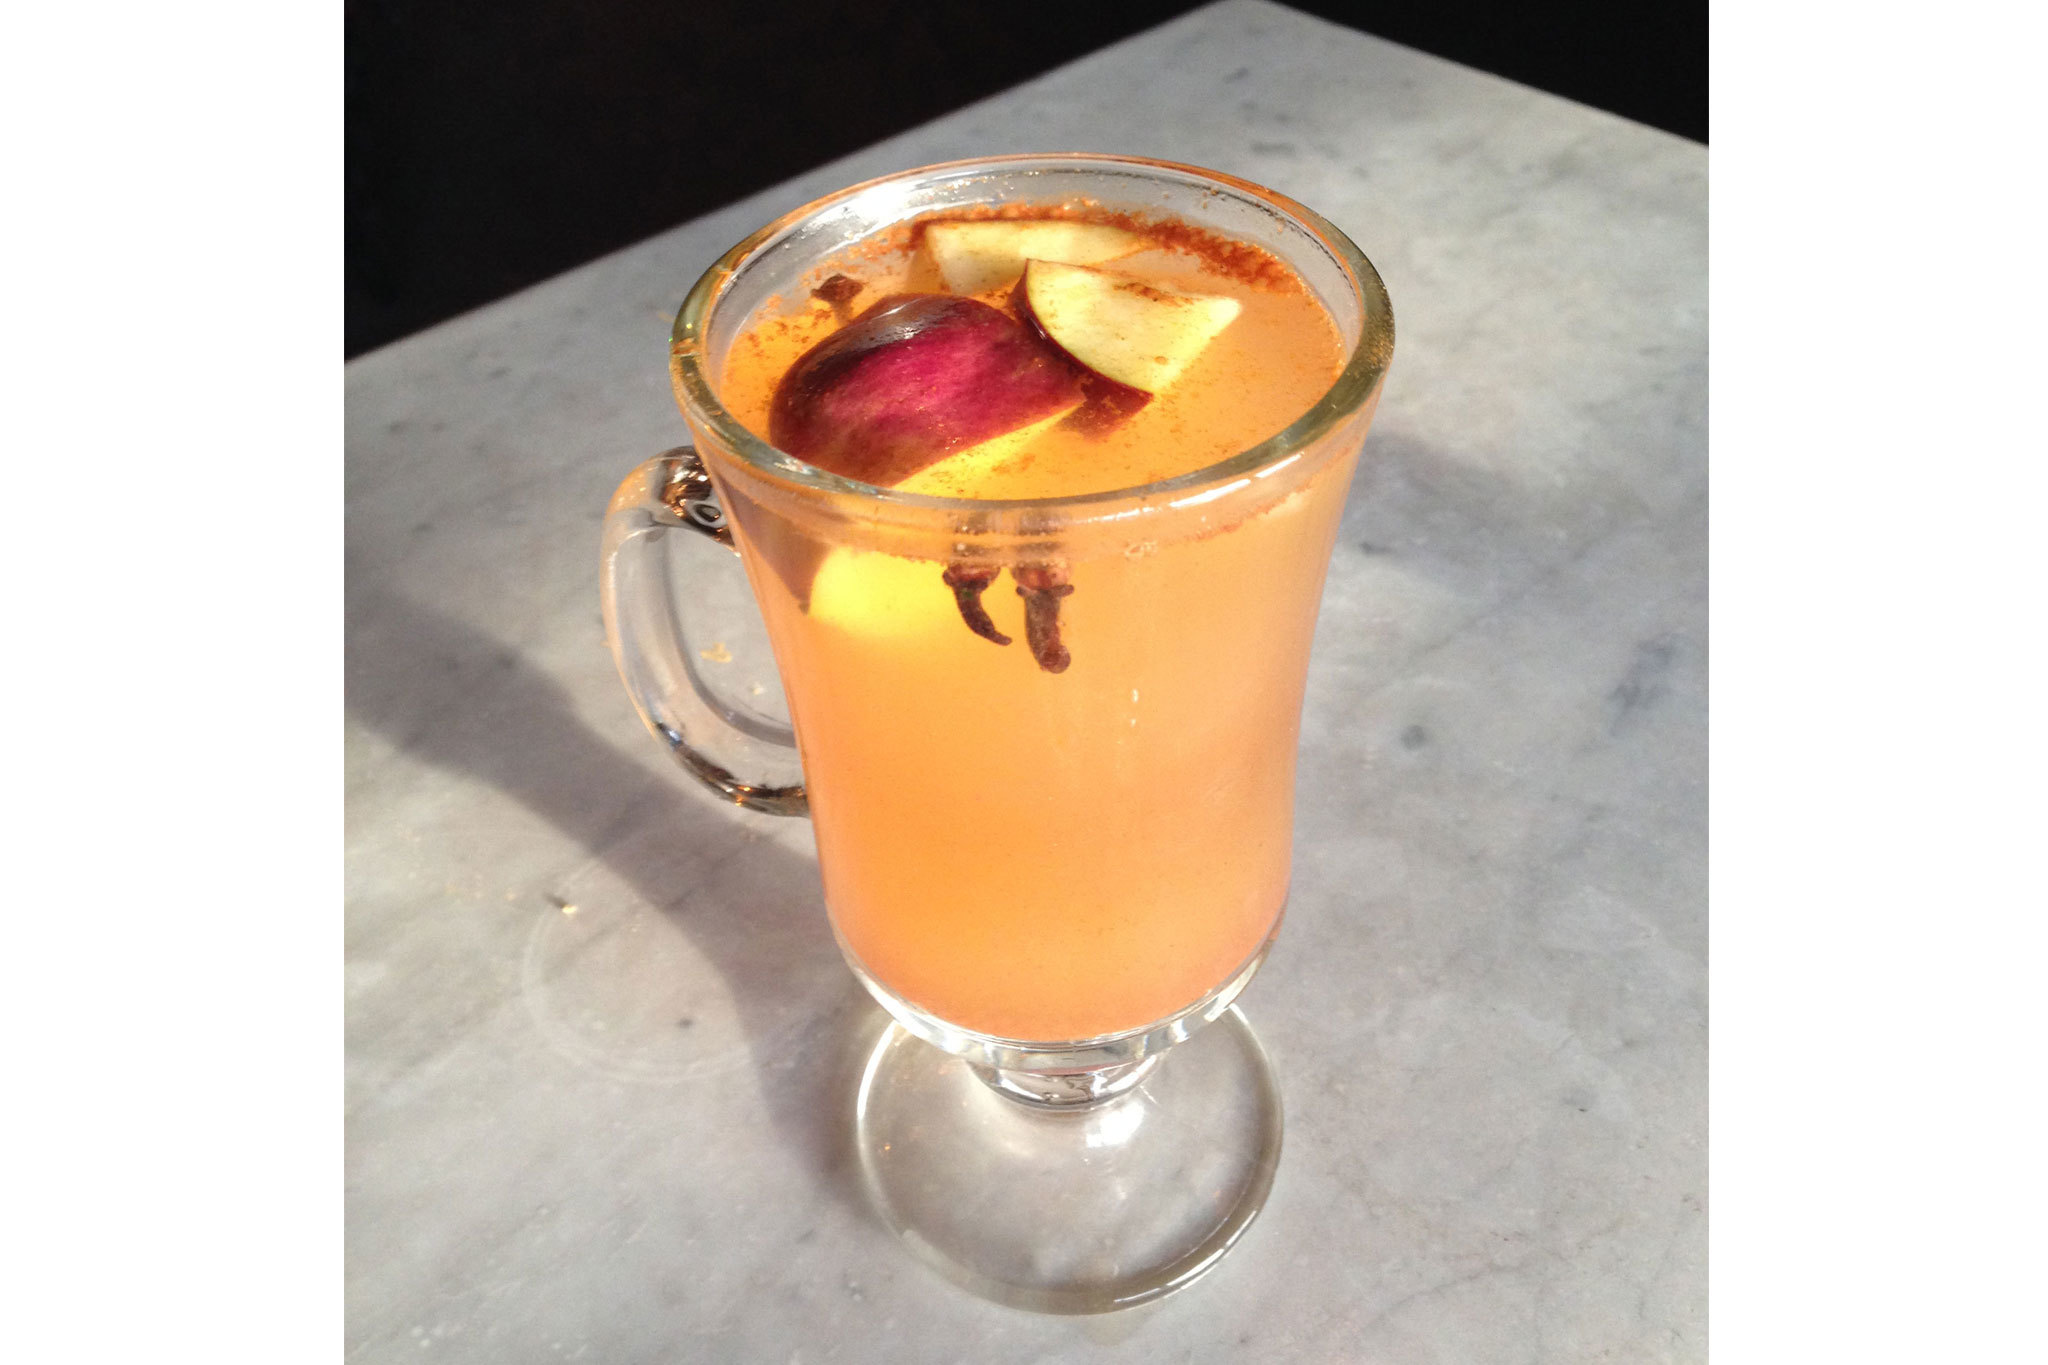 Spiced Cider at Thirsty Crow